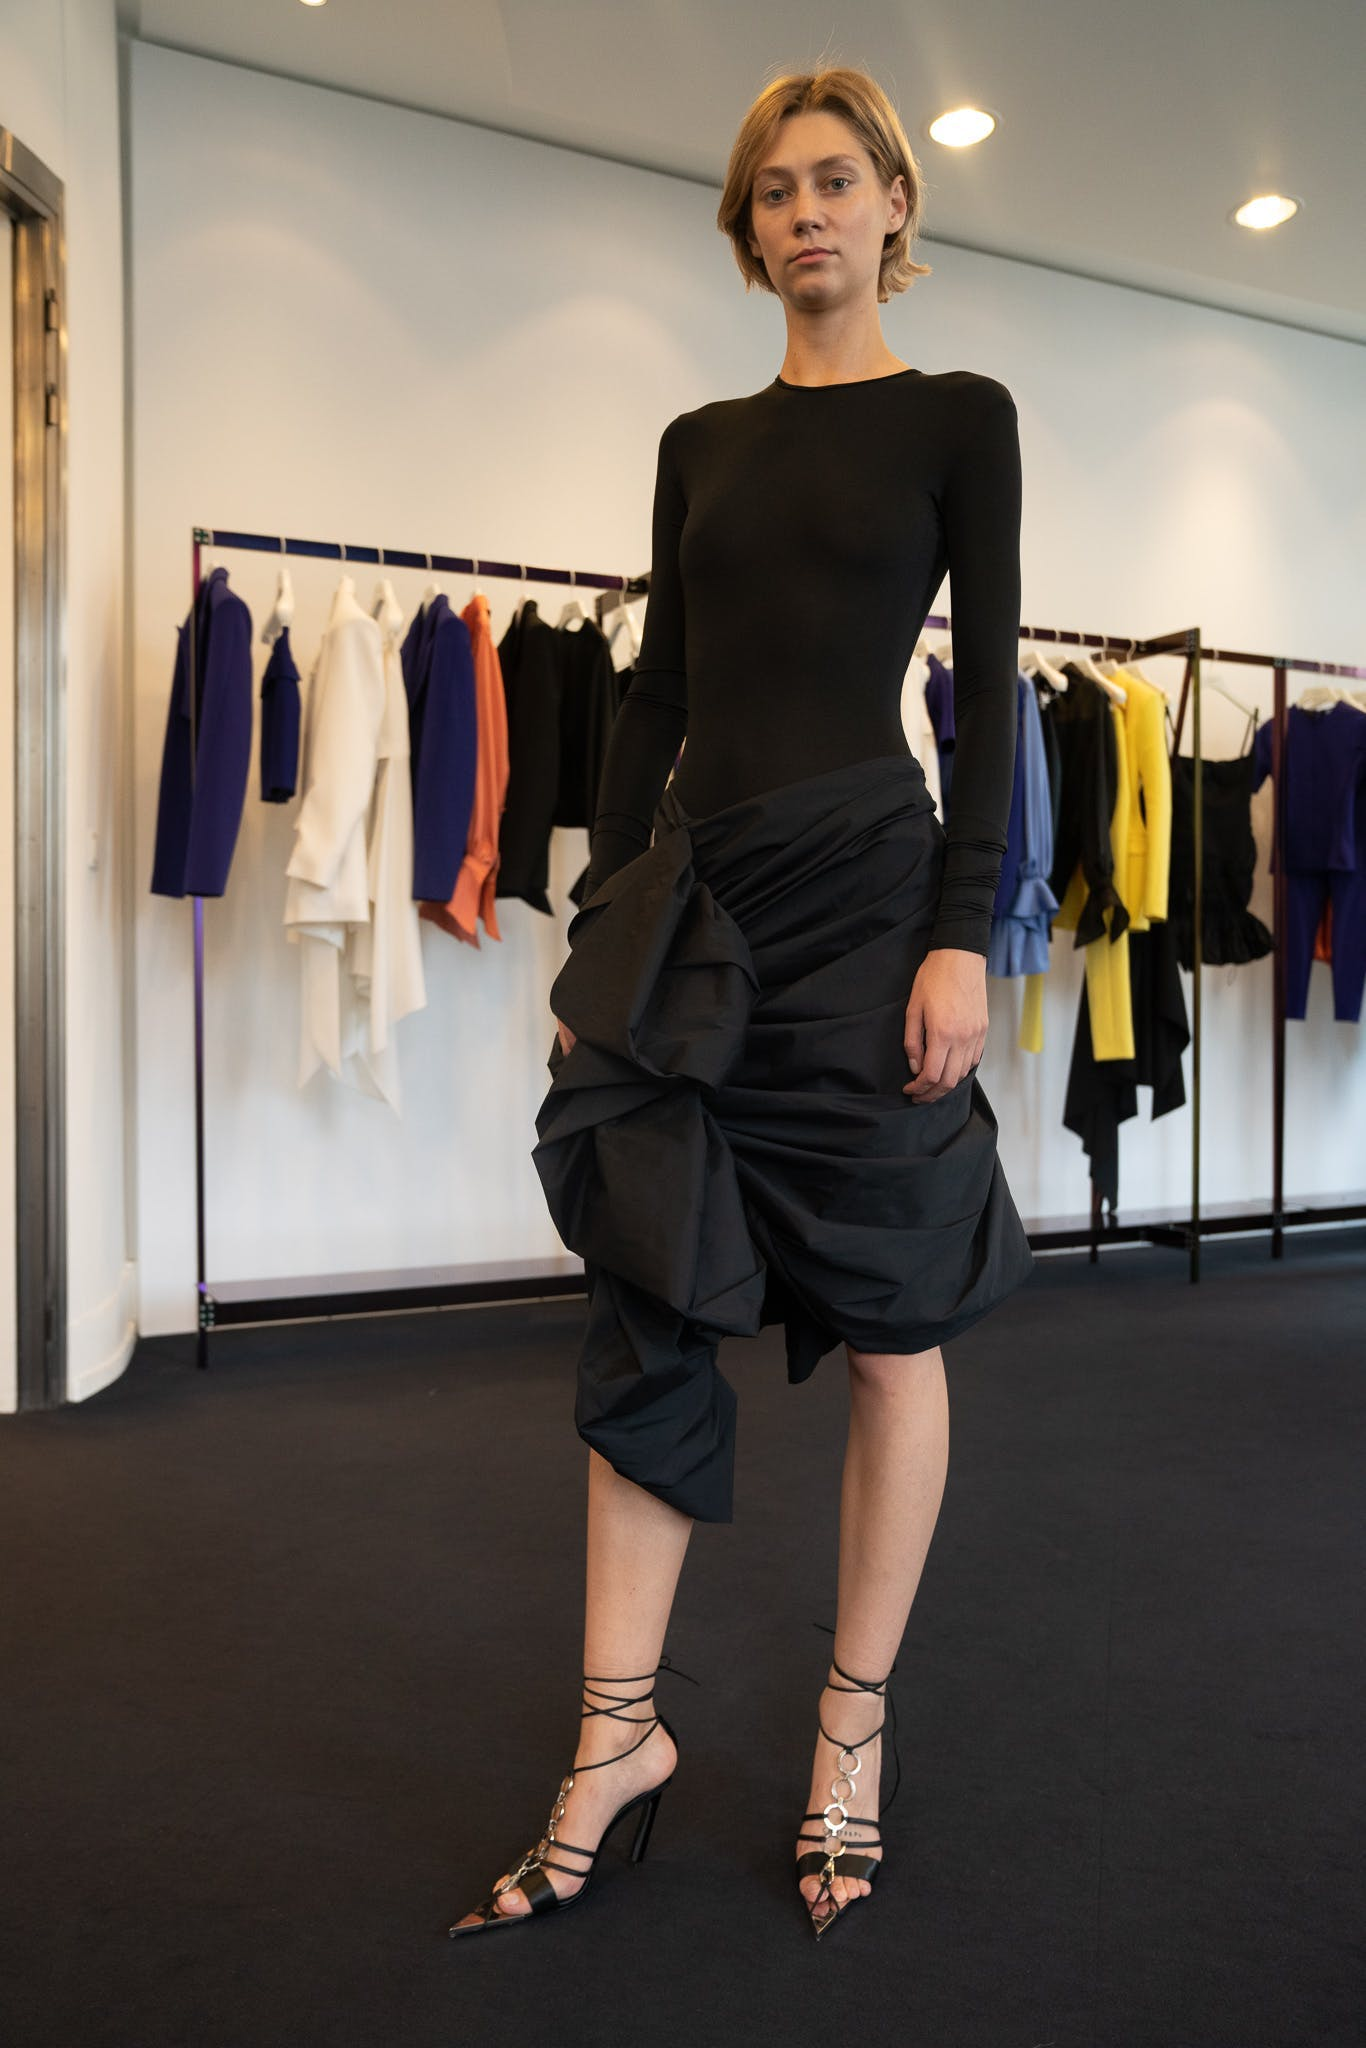 Mugler Bodysuit in Black Ruched Ruffle Skirt Spring 20 RTW